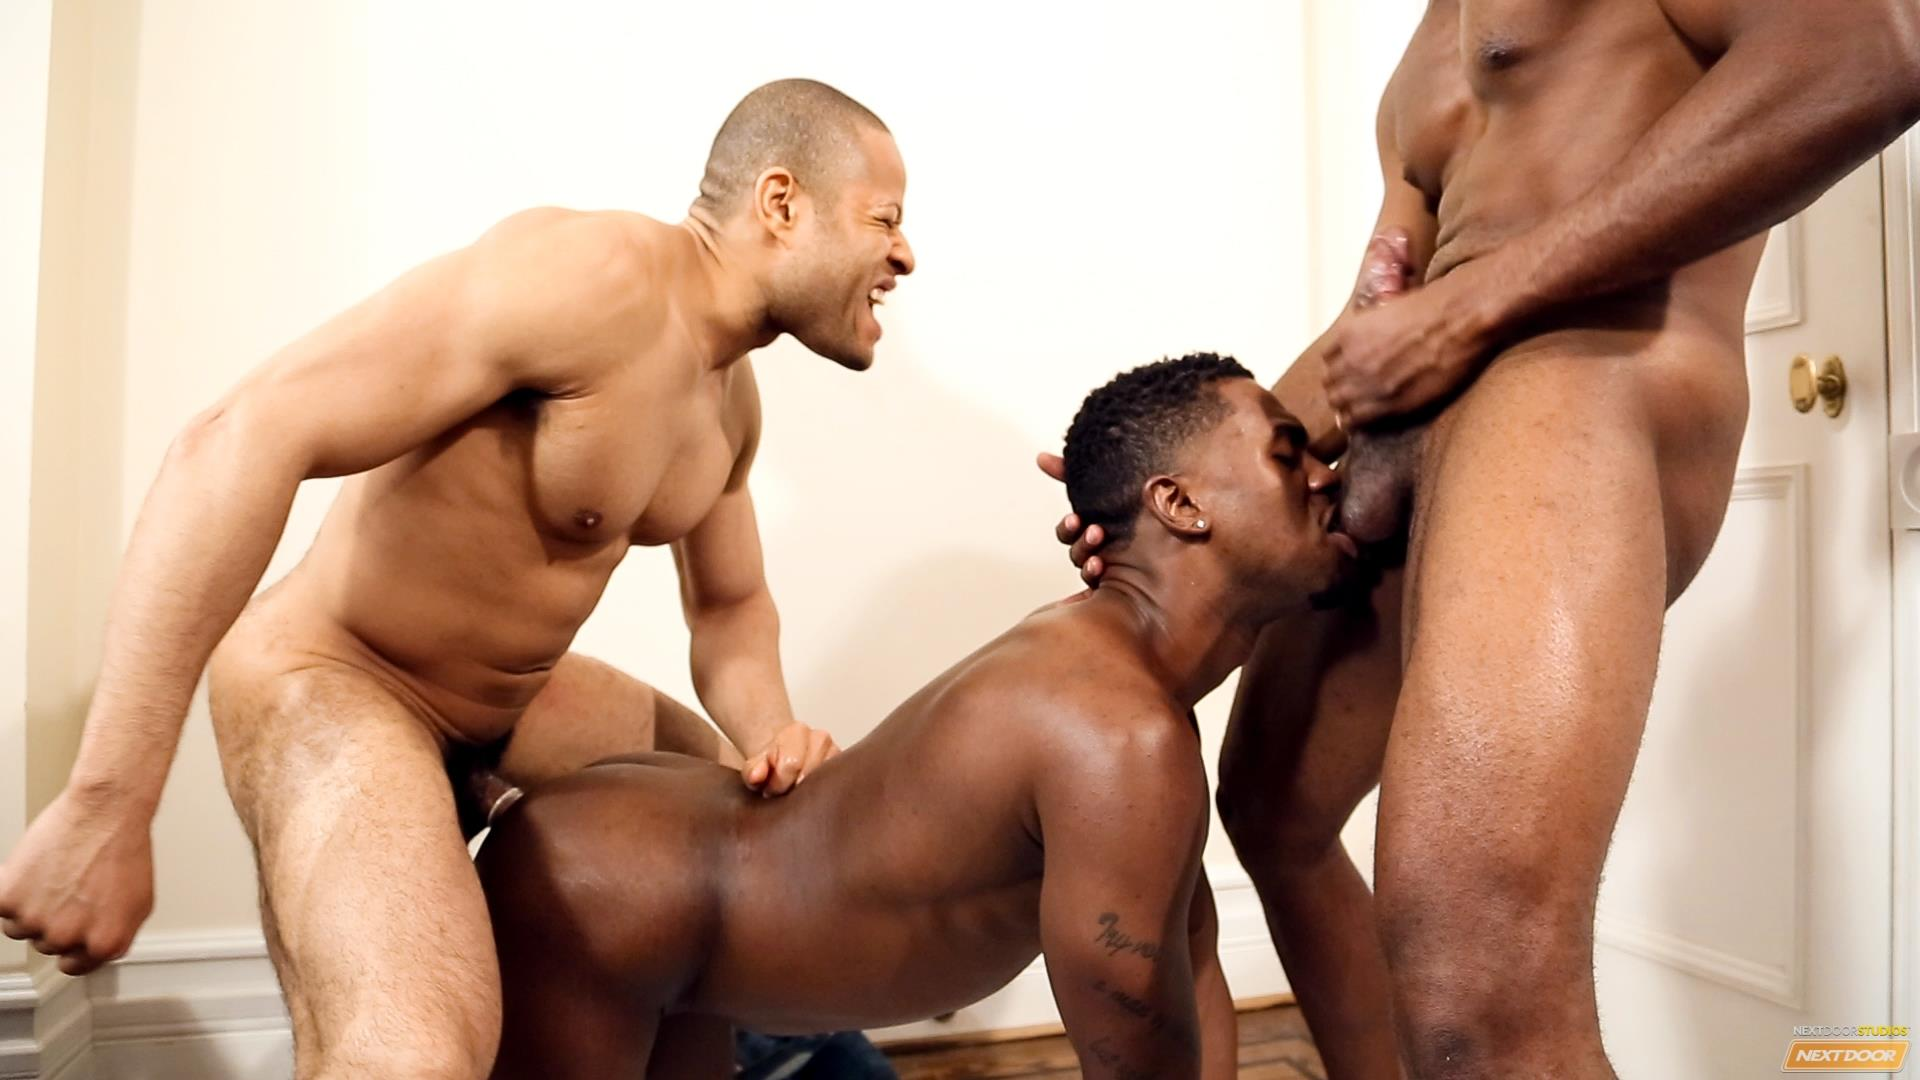 Next Door Ebony Krave Moore and Andre Donovan and Rex Cobra Big Black Cock Amateur Gay Porn 15